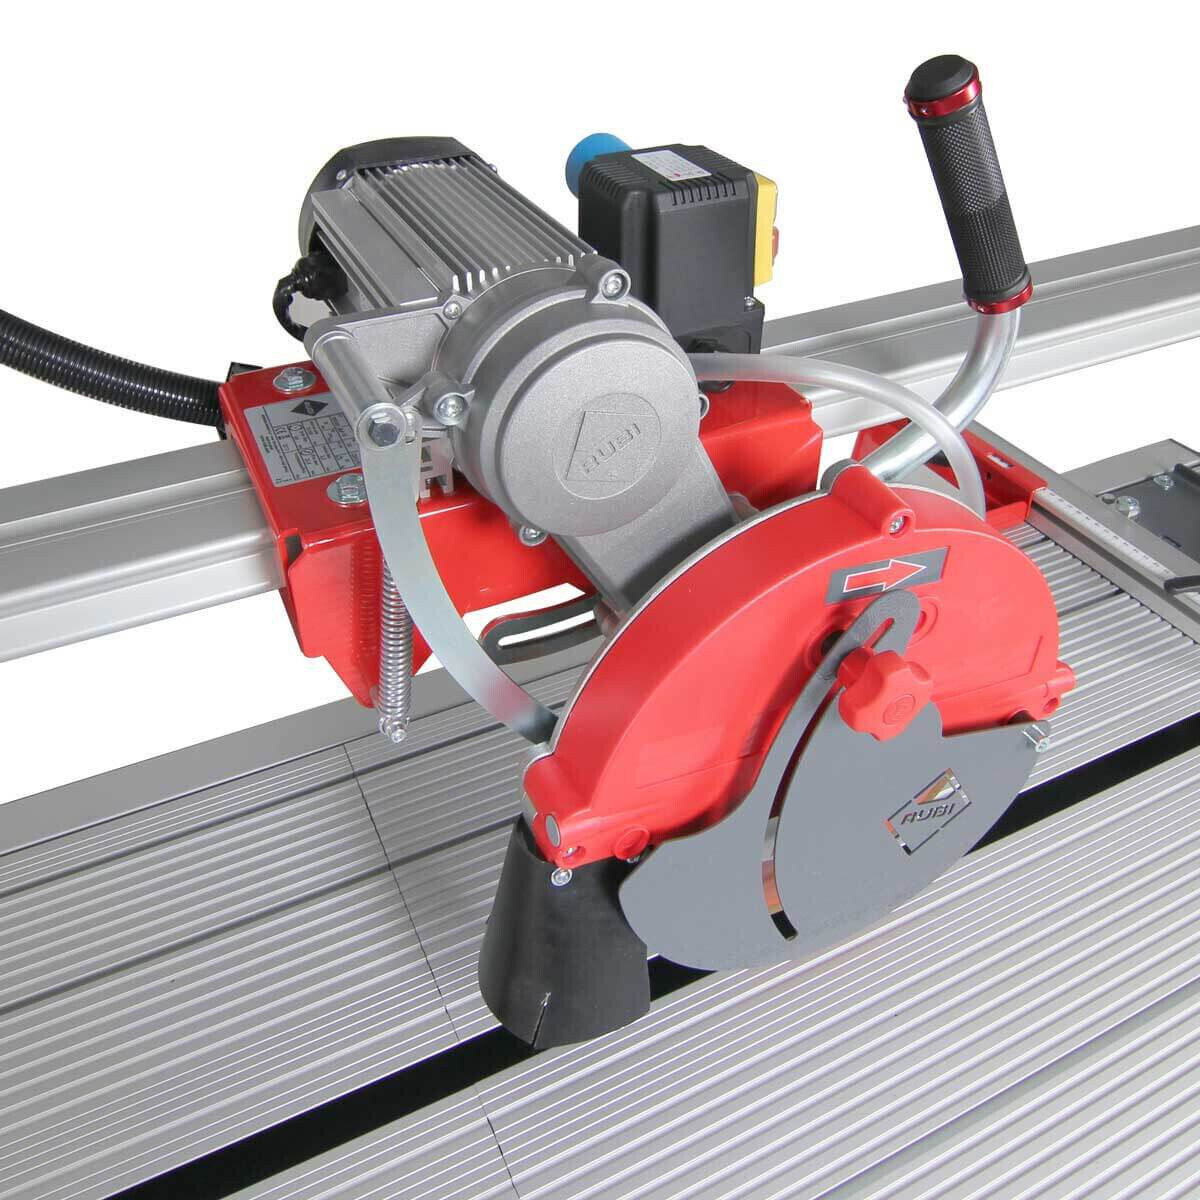 Rubi DX250-1000 Wet Saw Top View